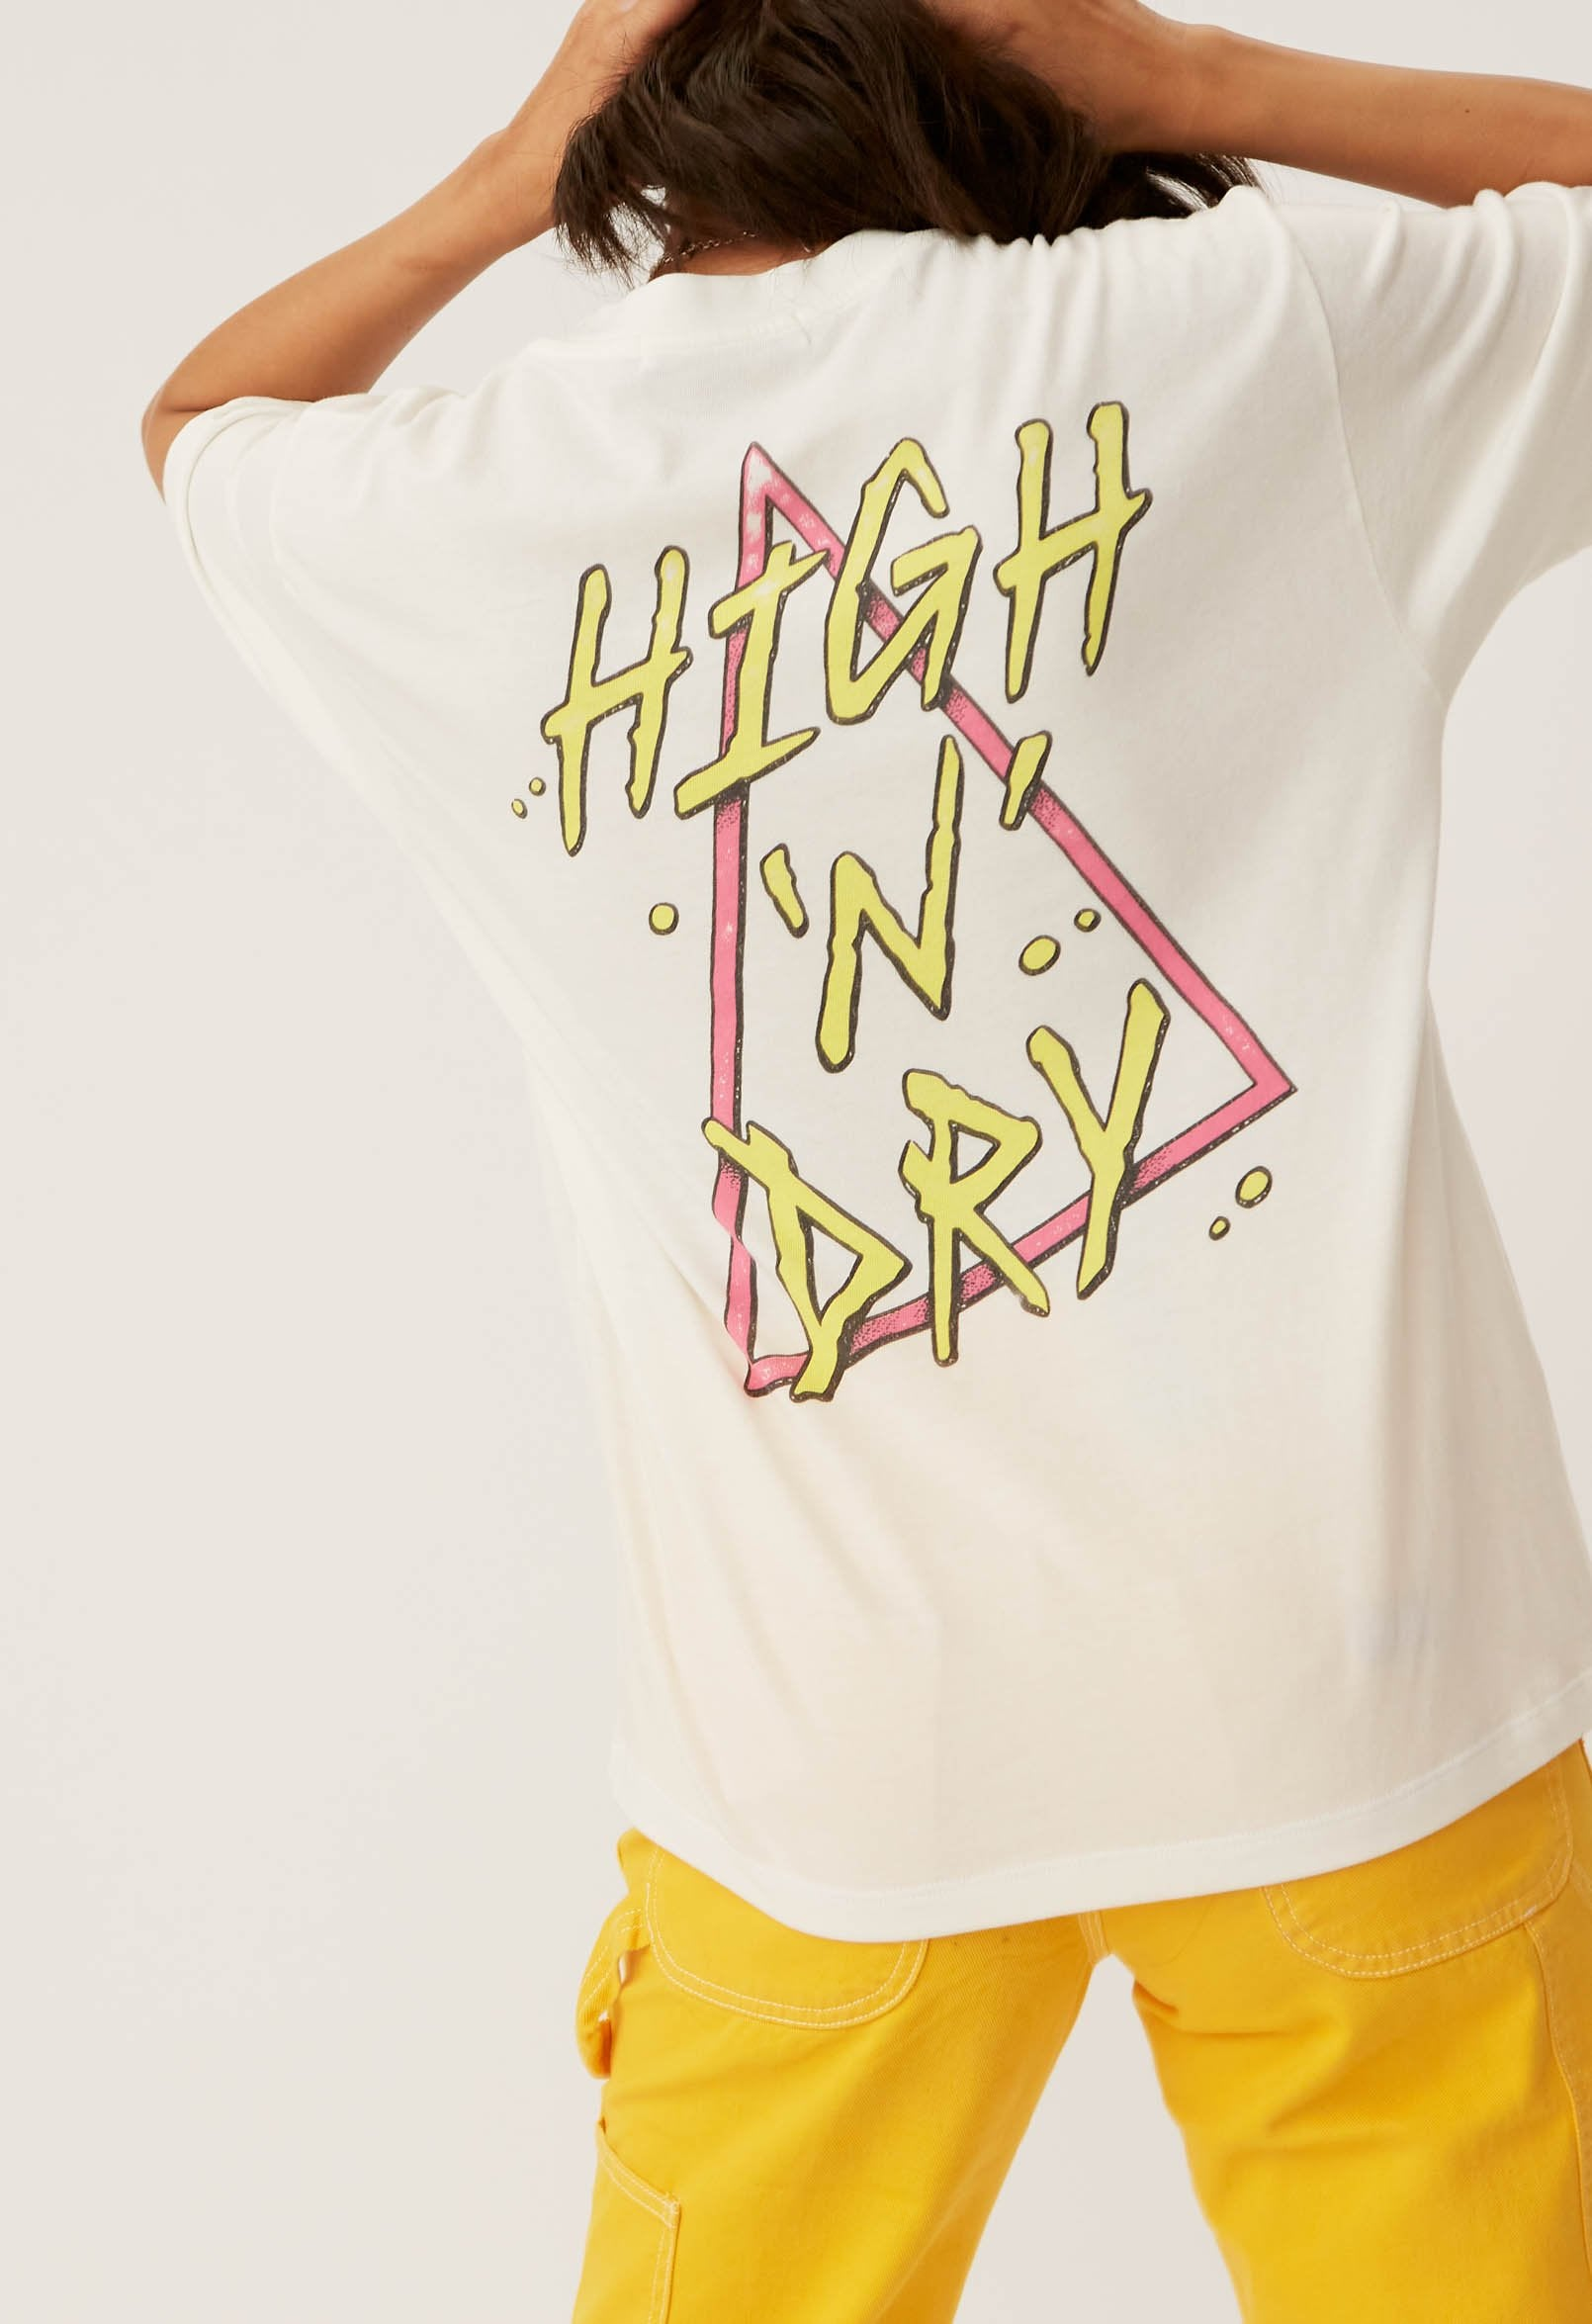 Def Leppard High N' Dry Graphic Tee